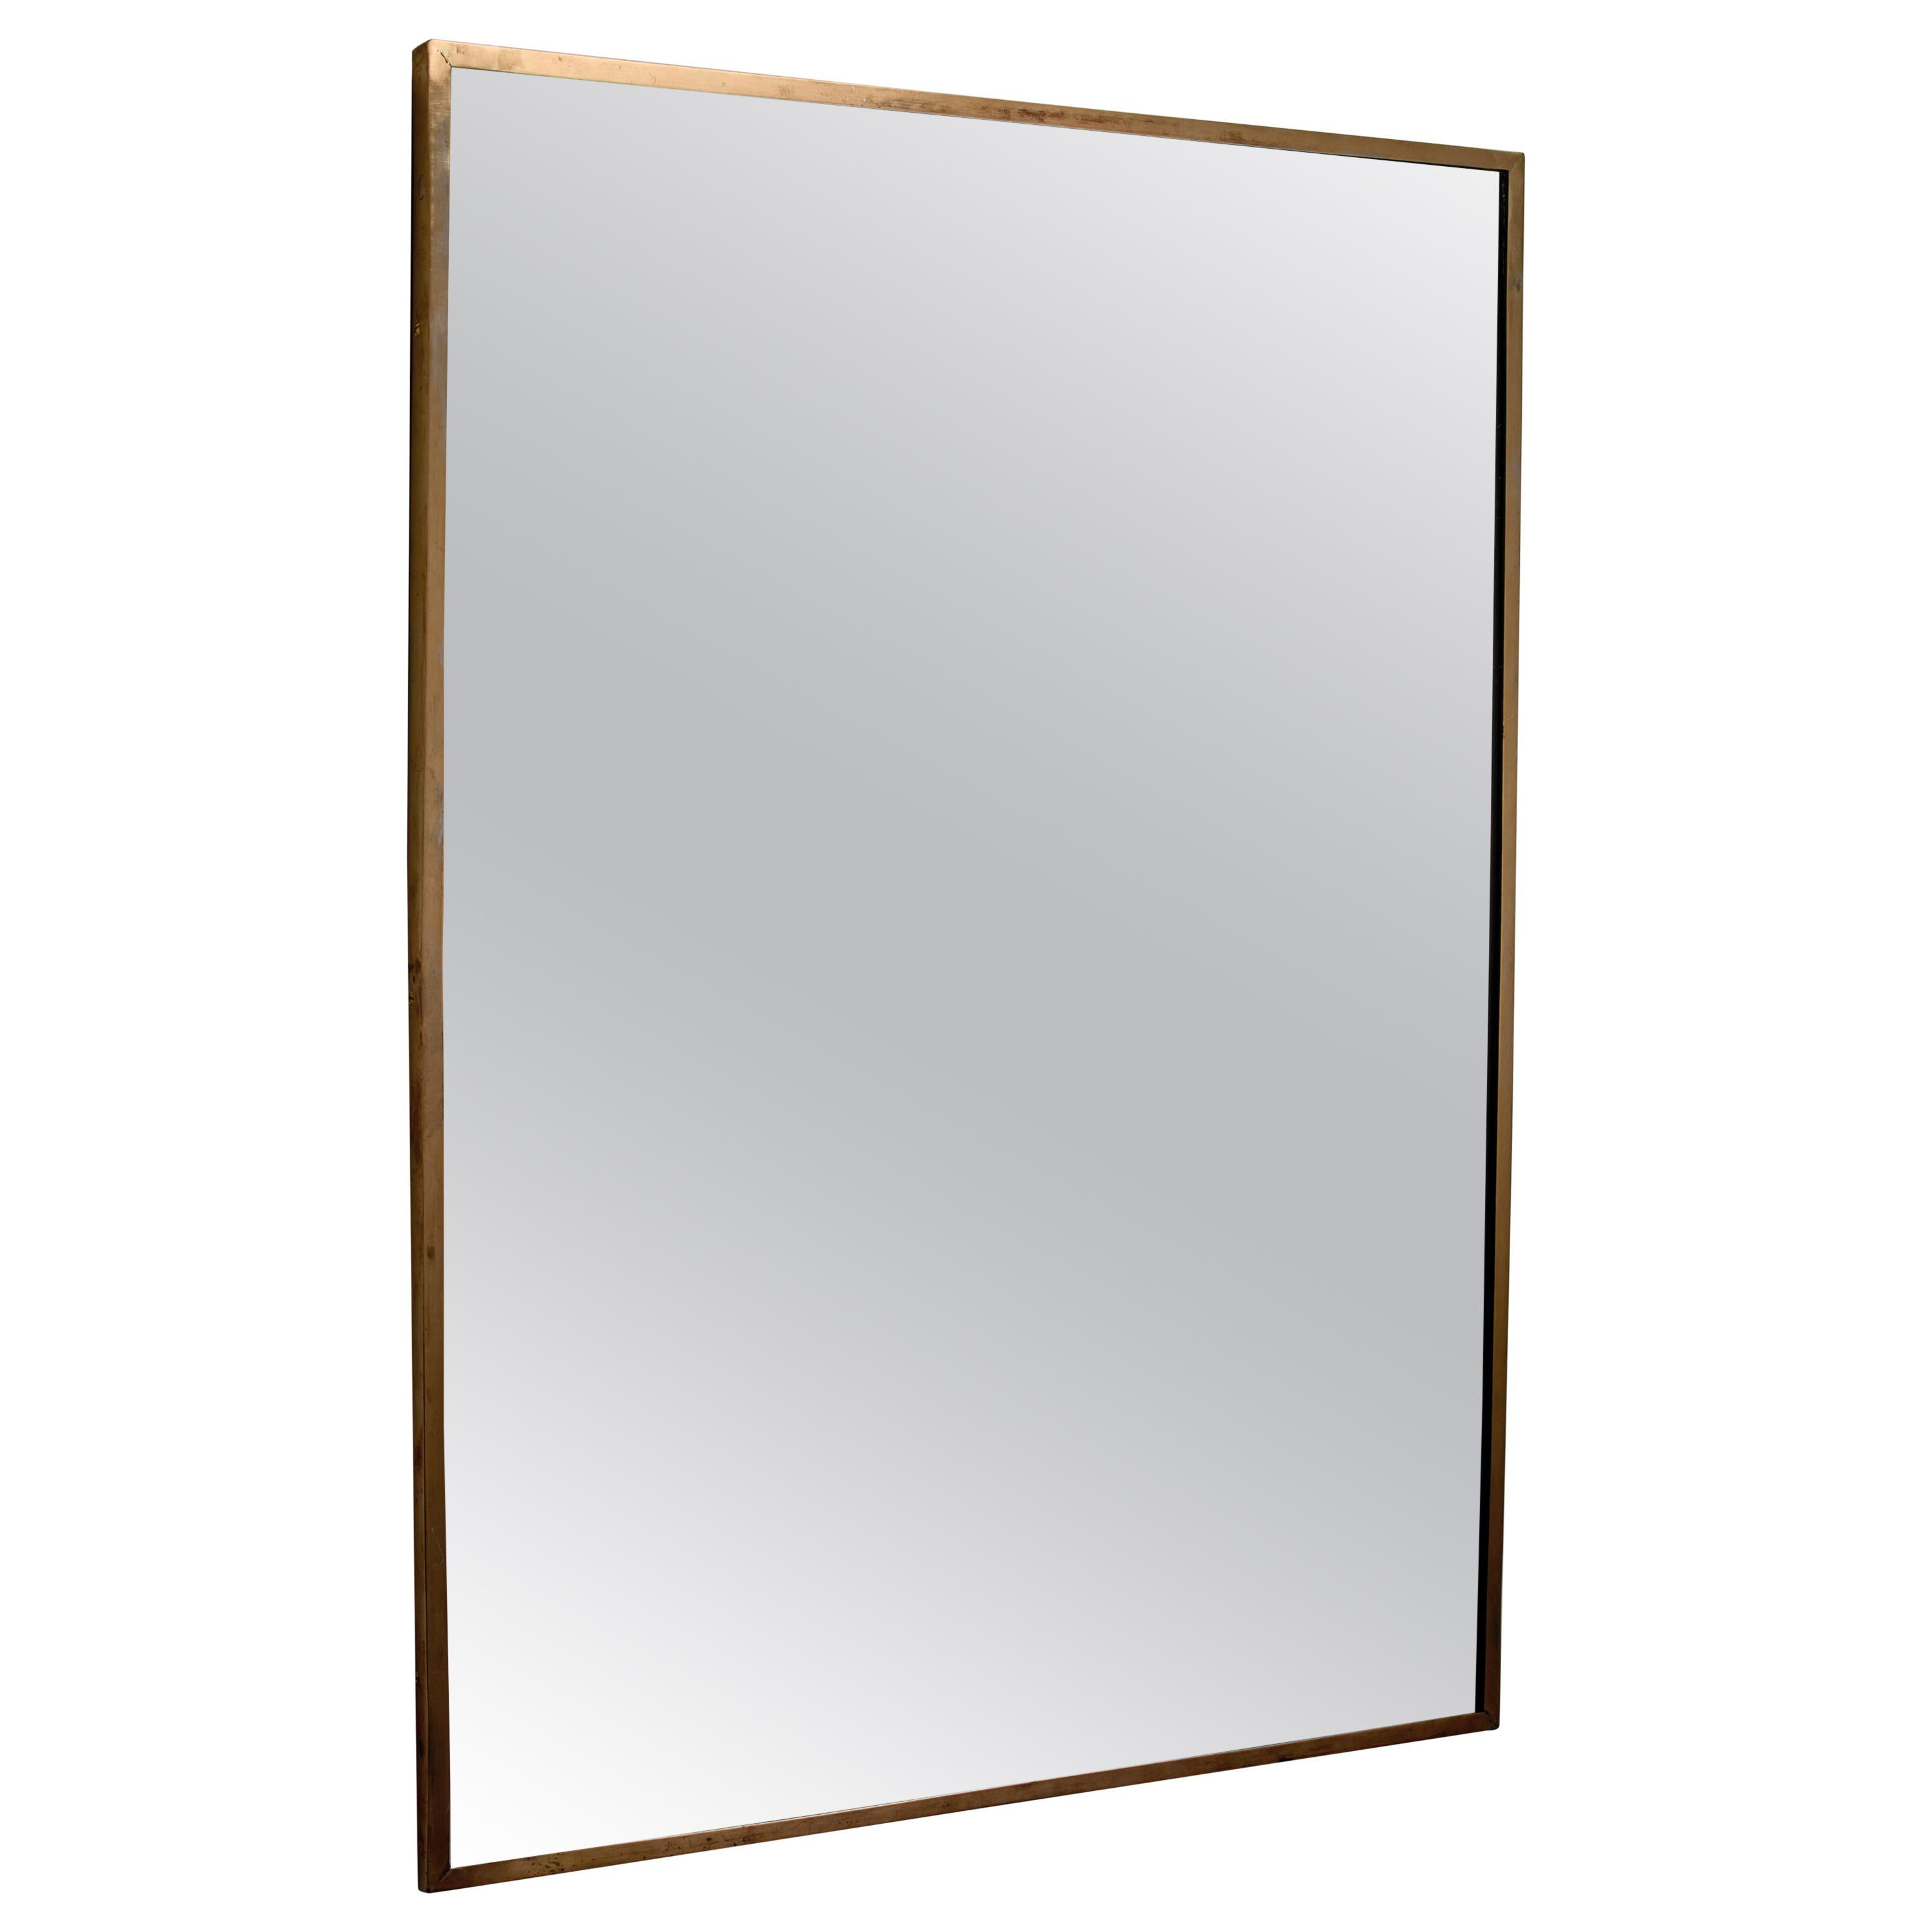 Rectangular Italian brass mirror, 1950s